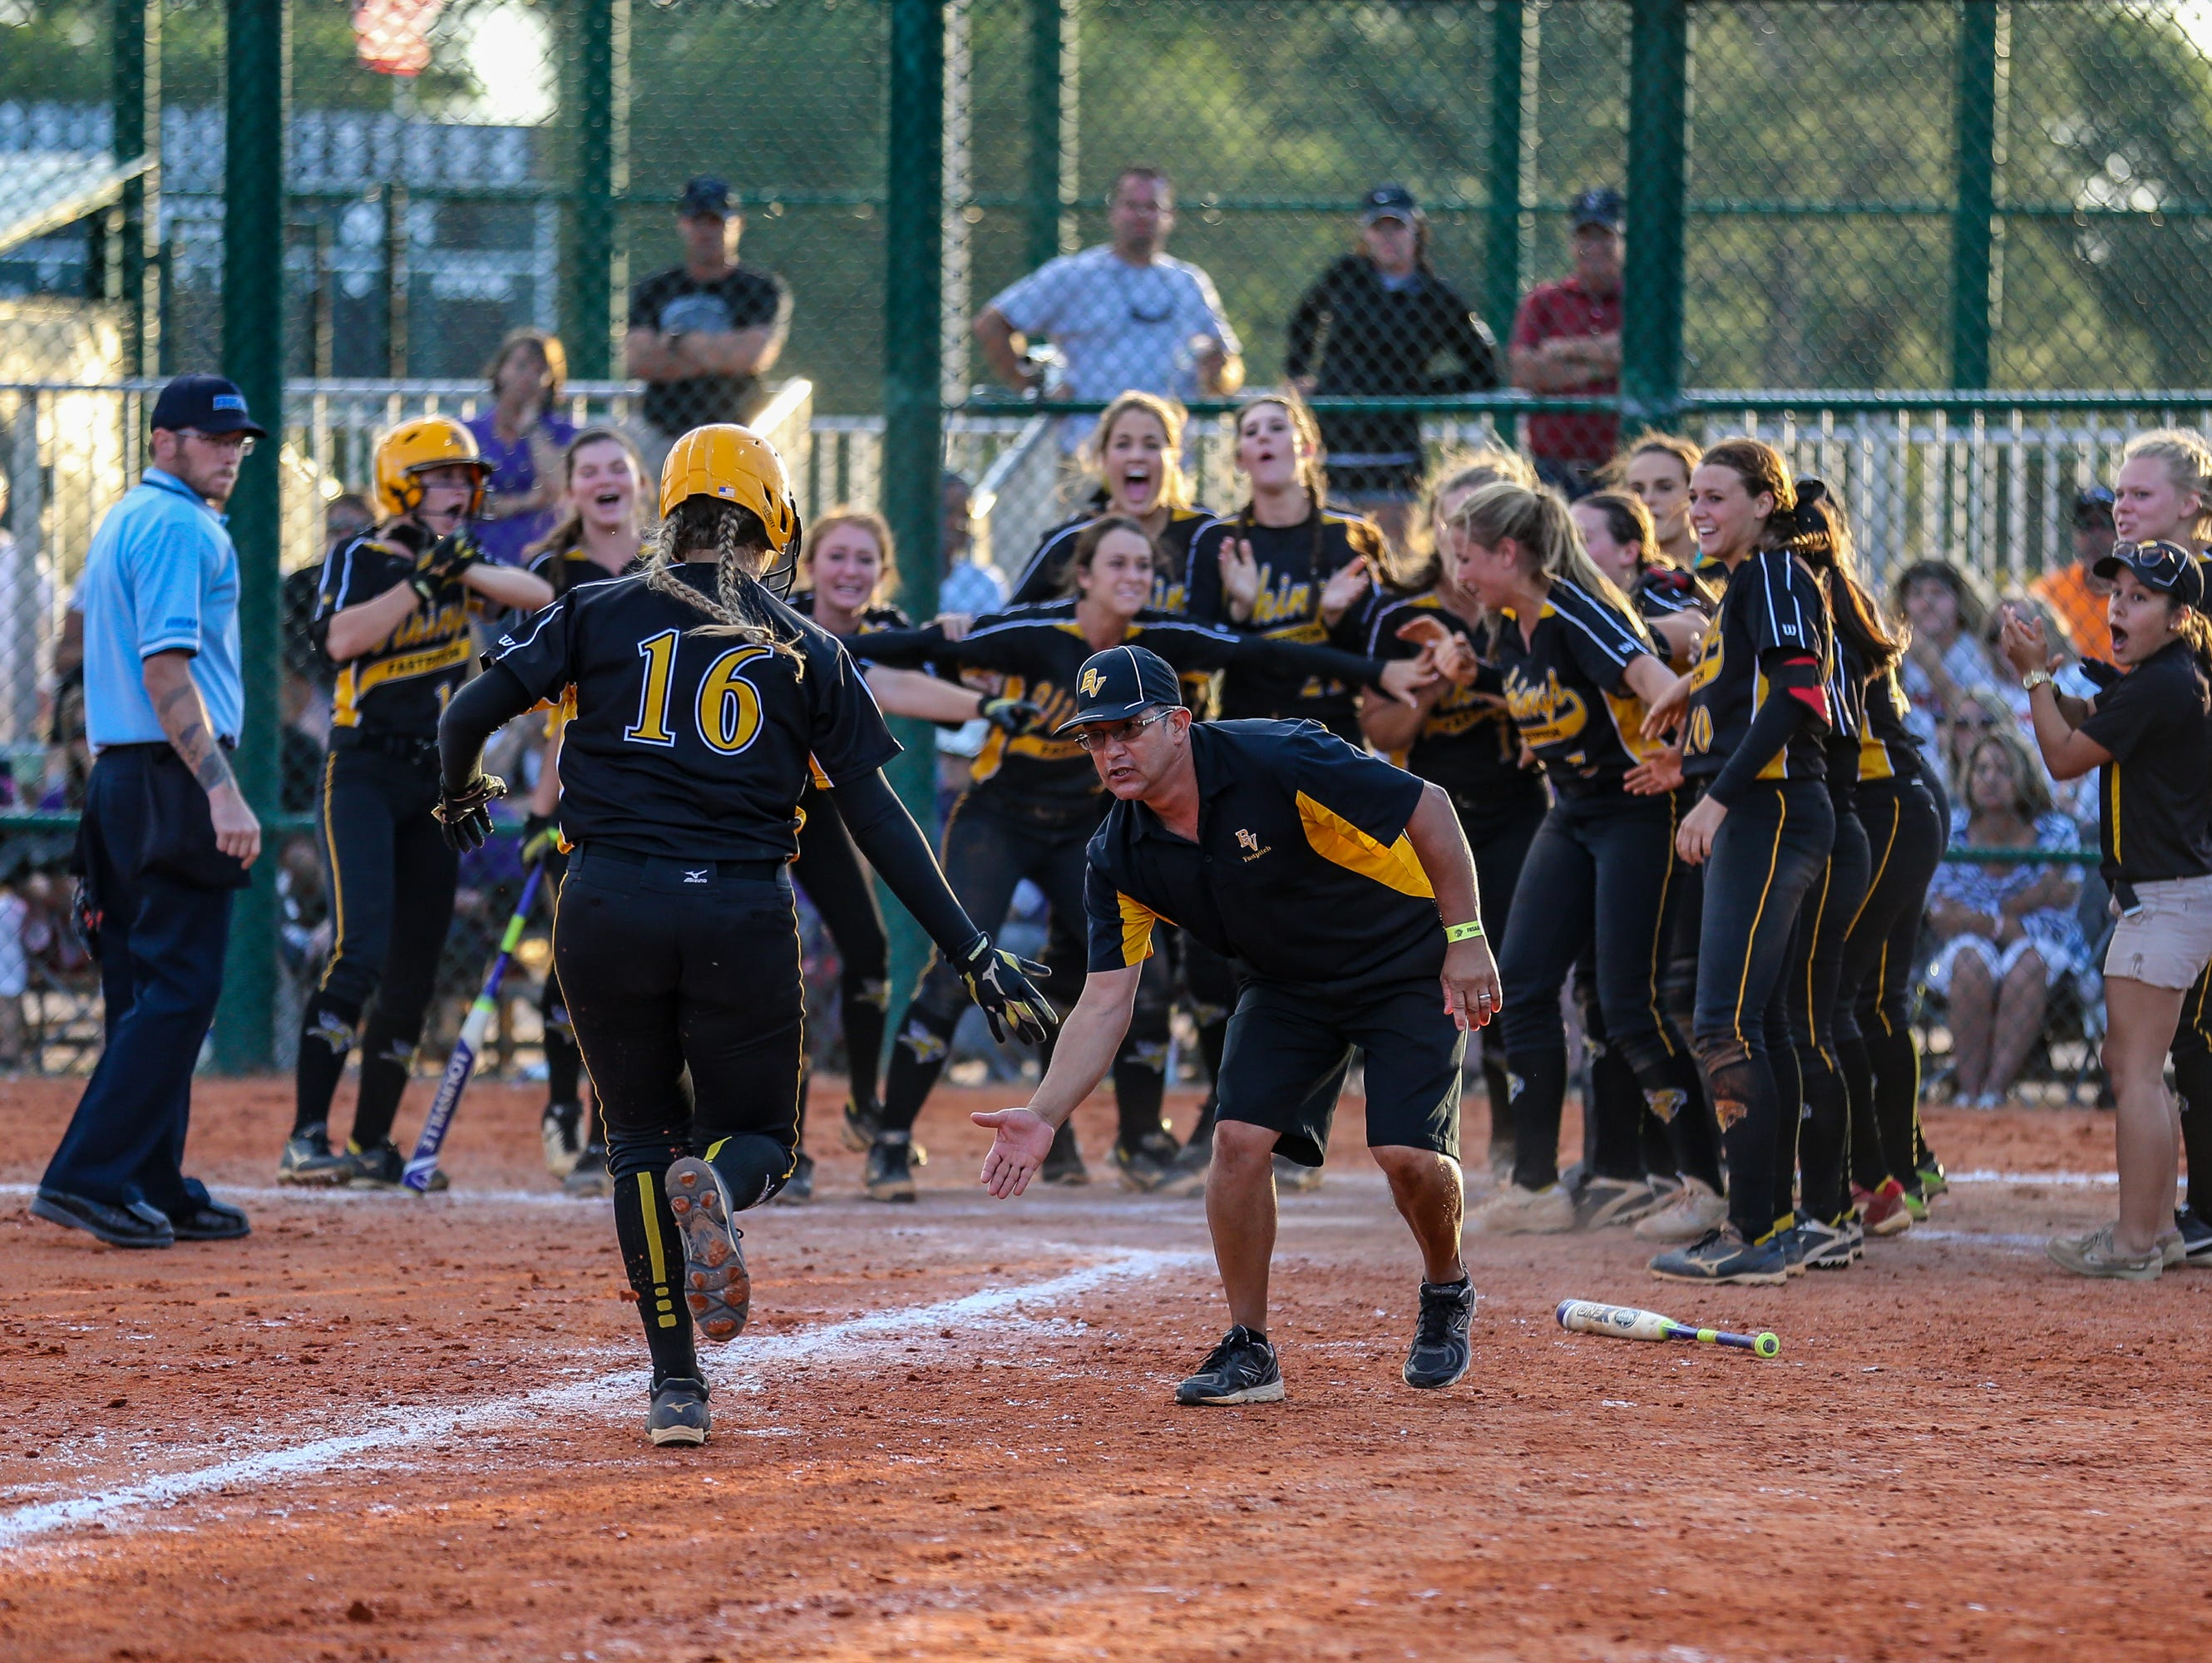 Sammie Massaro, No. 16, trots toward home plate and her waiting Bishop Verot teammates after her state-championship-clinching home run on Thursday.